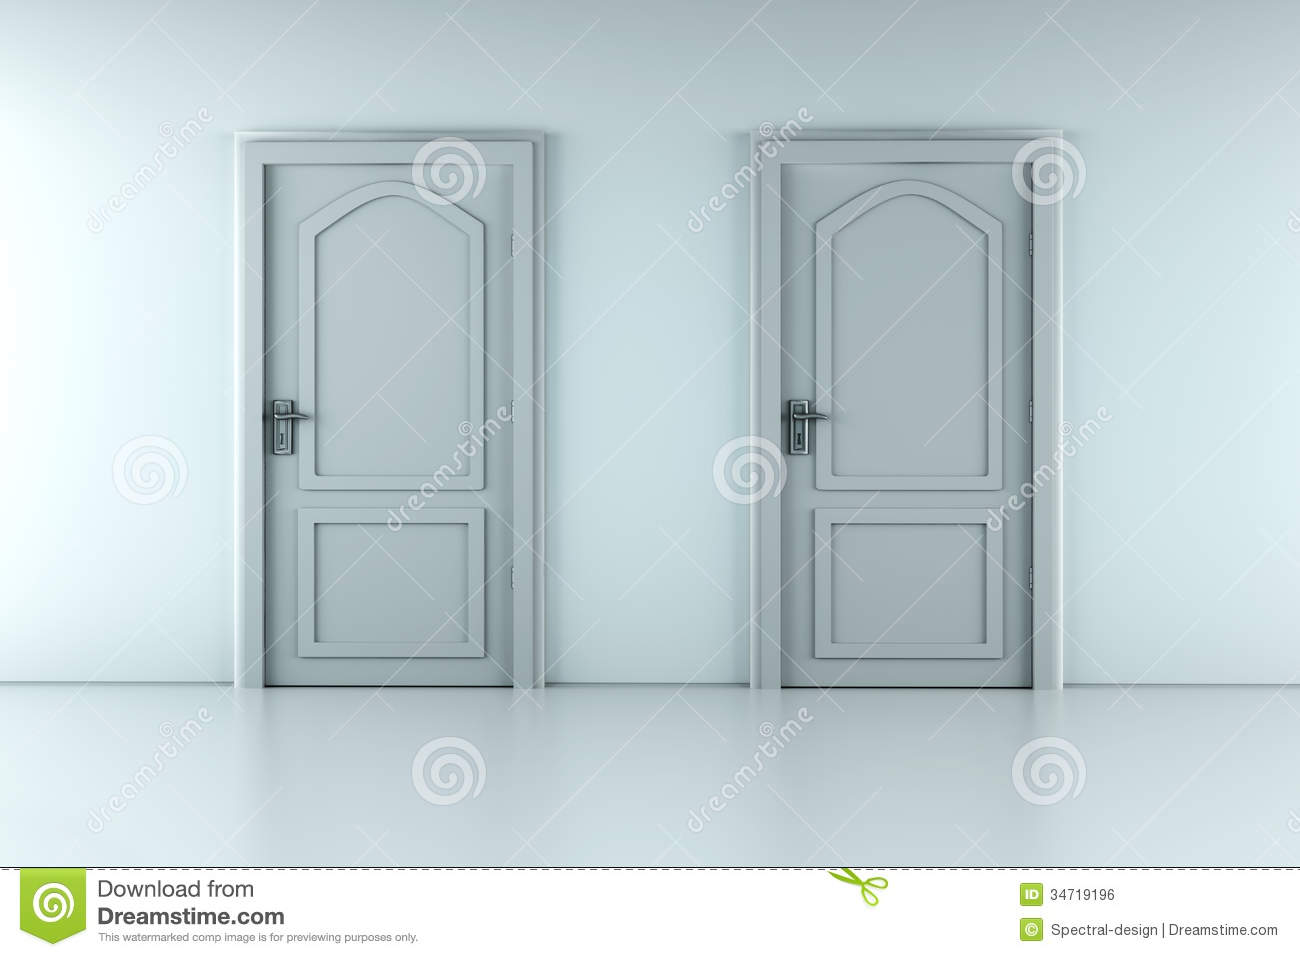 Two Doors & Two Doors stock illustration. Illustration of domestic - 34719196